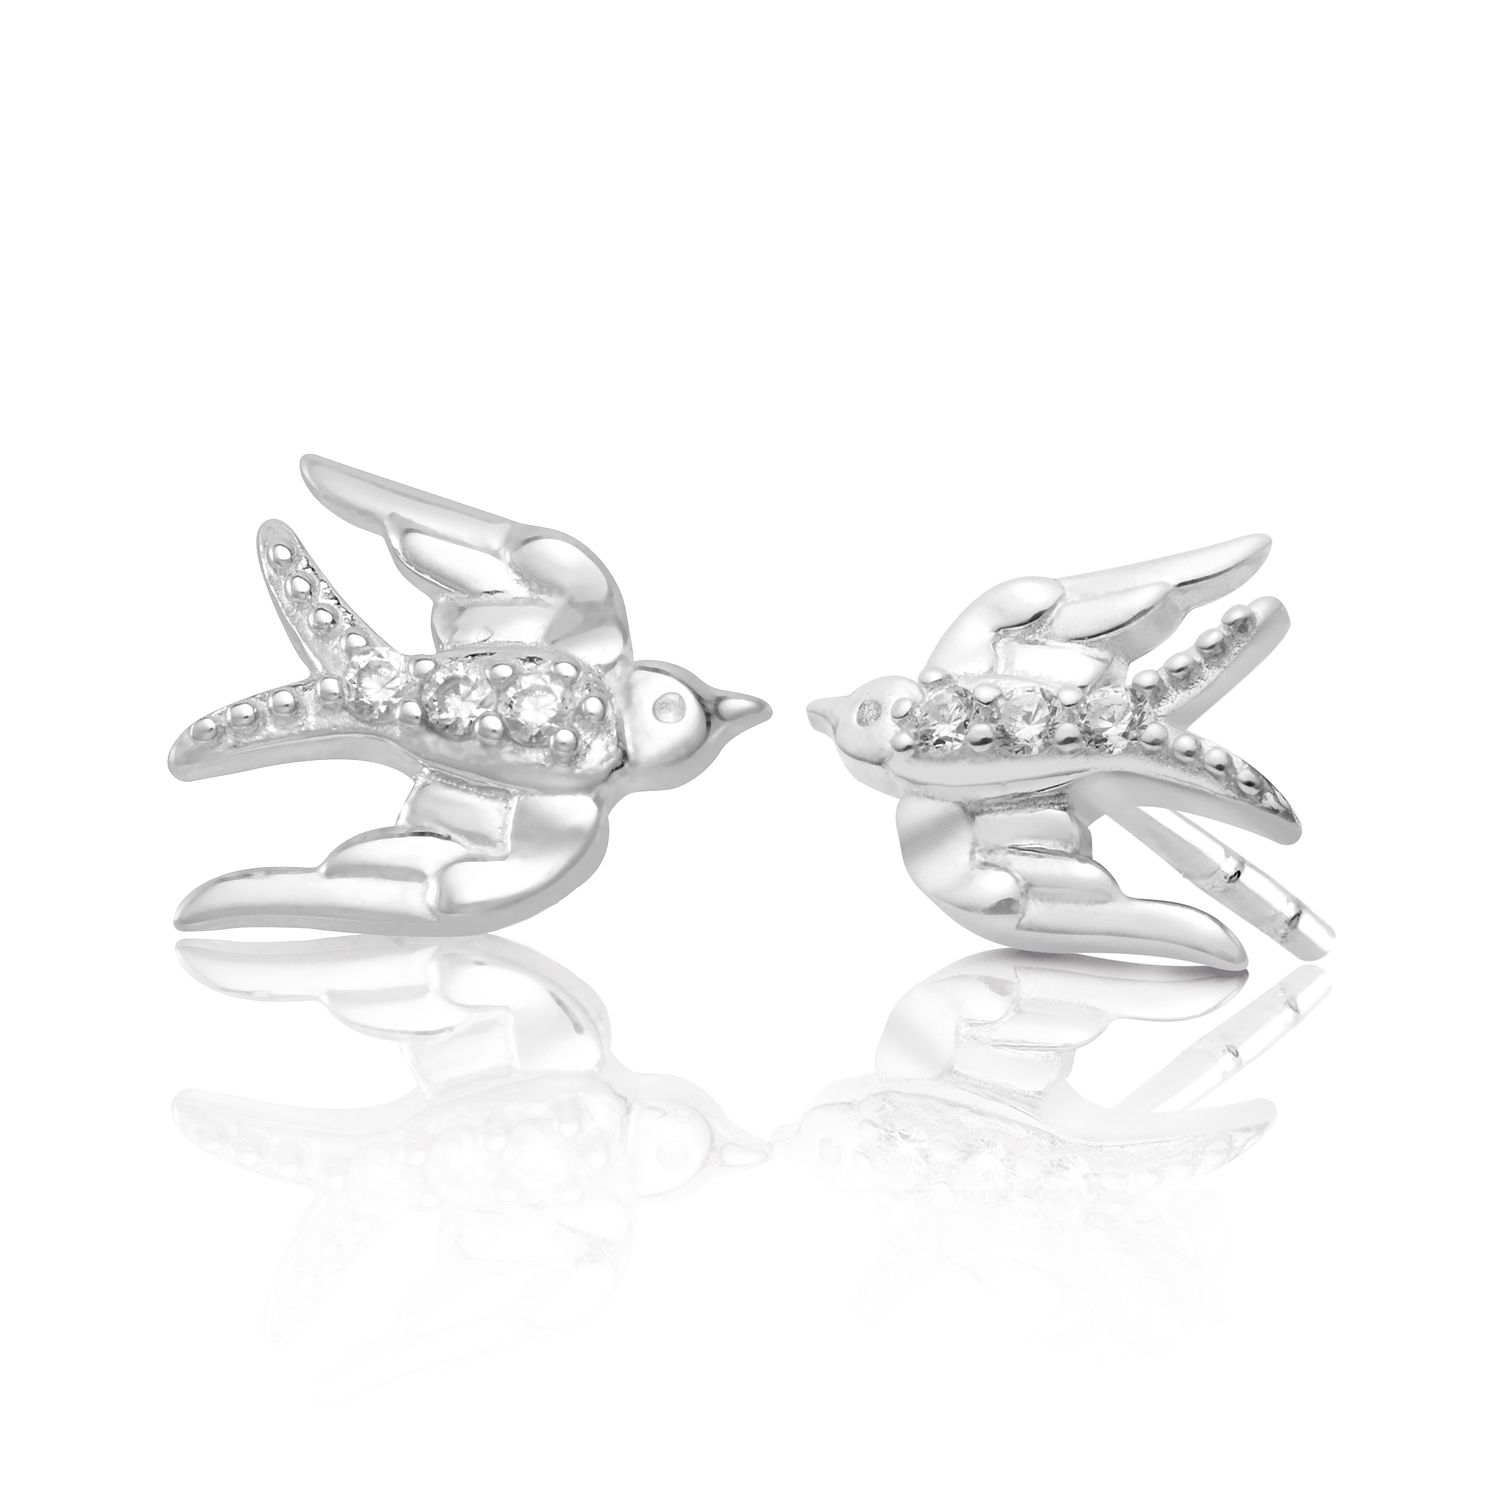 Chamilia Lovebird Stud Earrings with Swarovski Zirconia - Product number 2221748